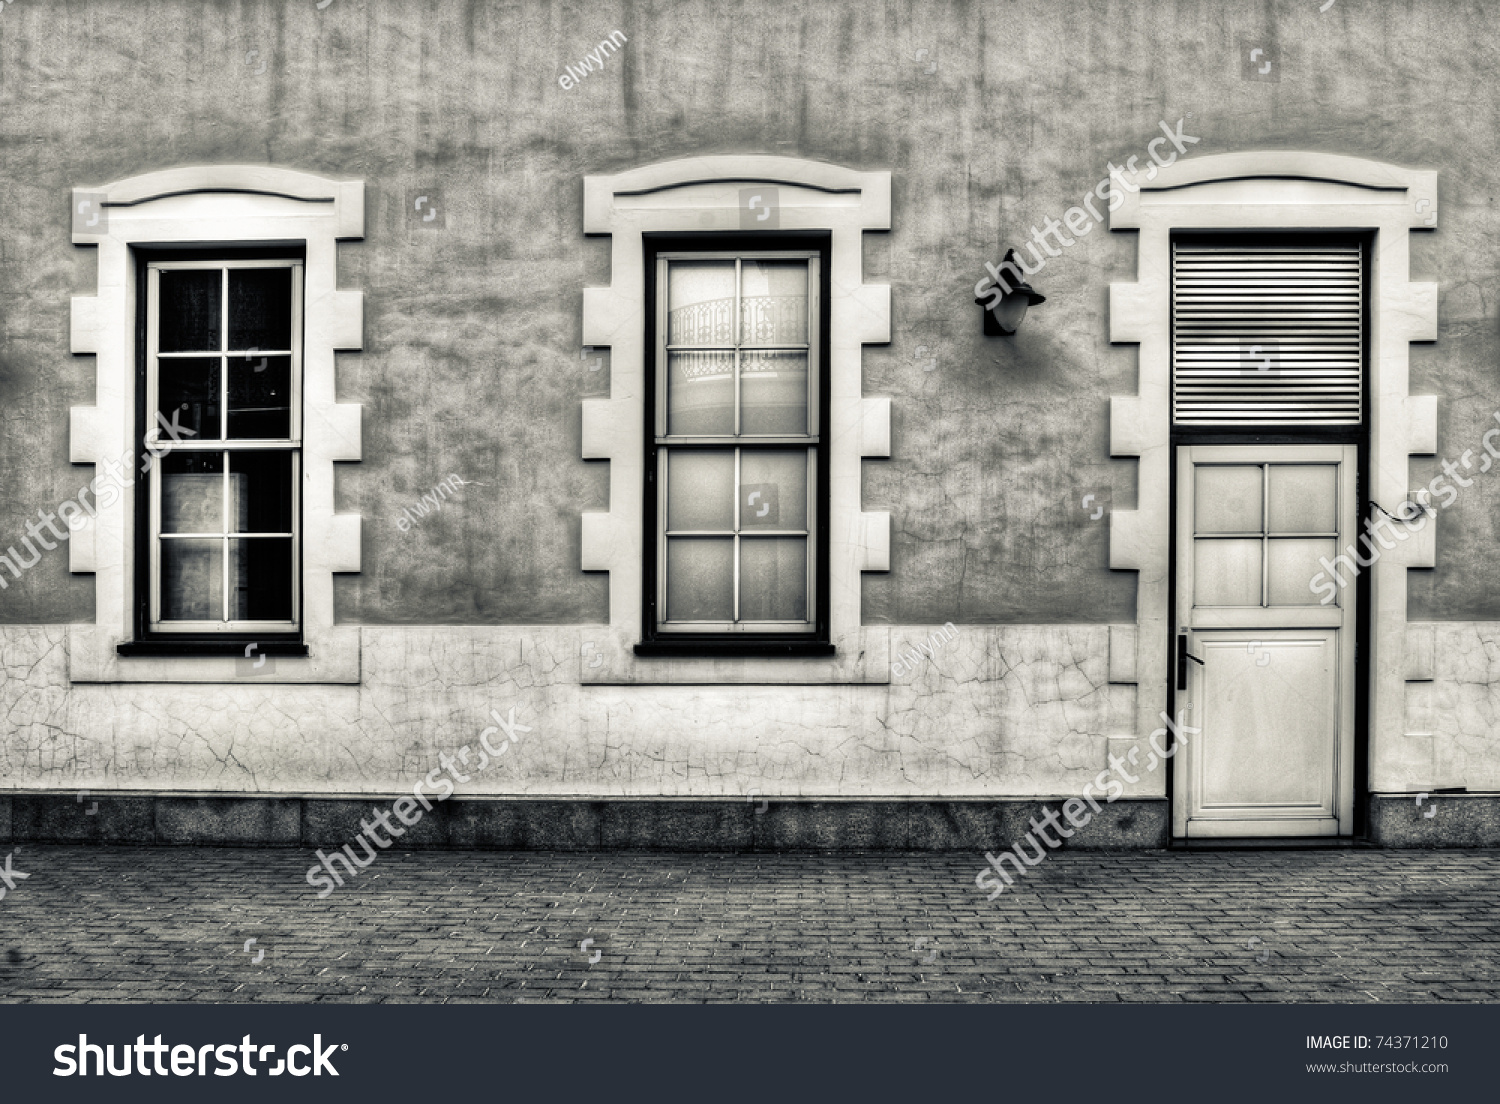 Background of house exterior with grunge style stock for Exterior background